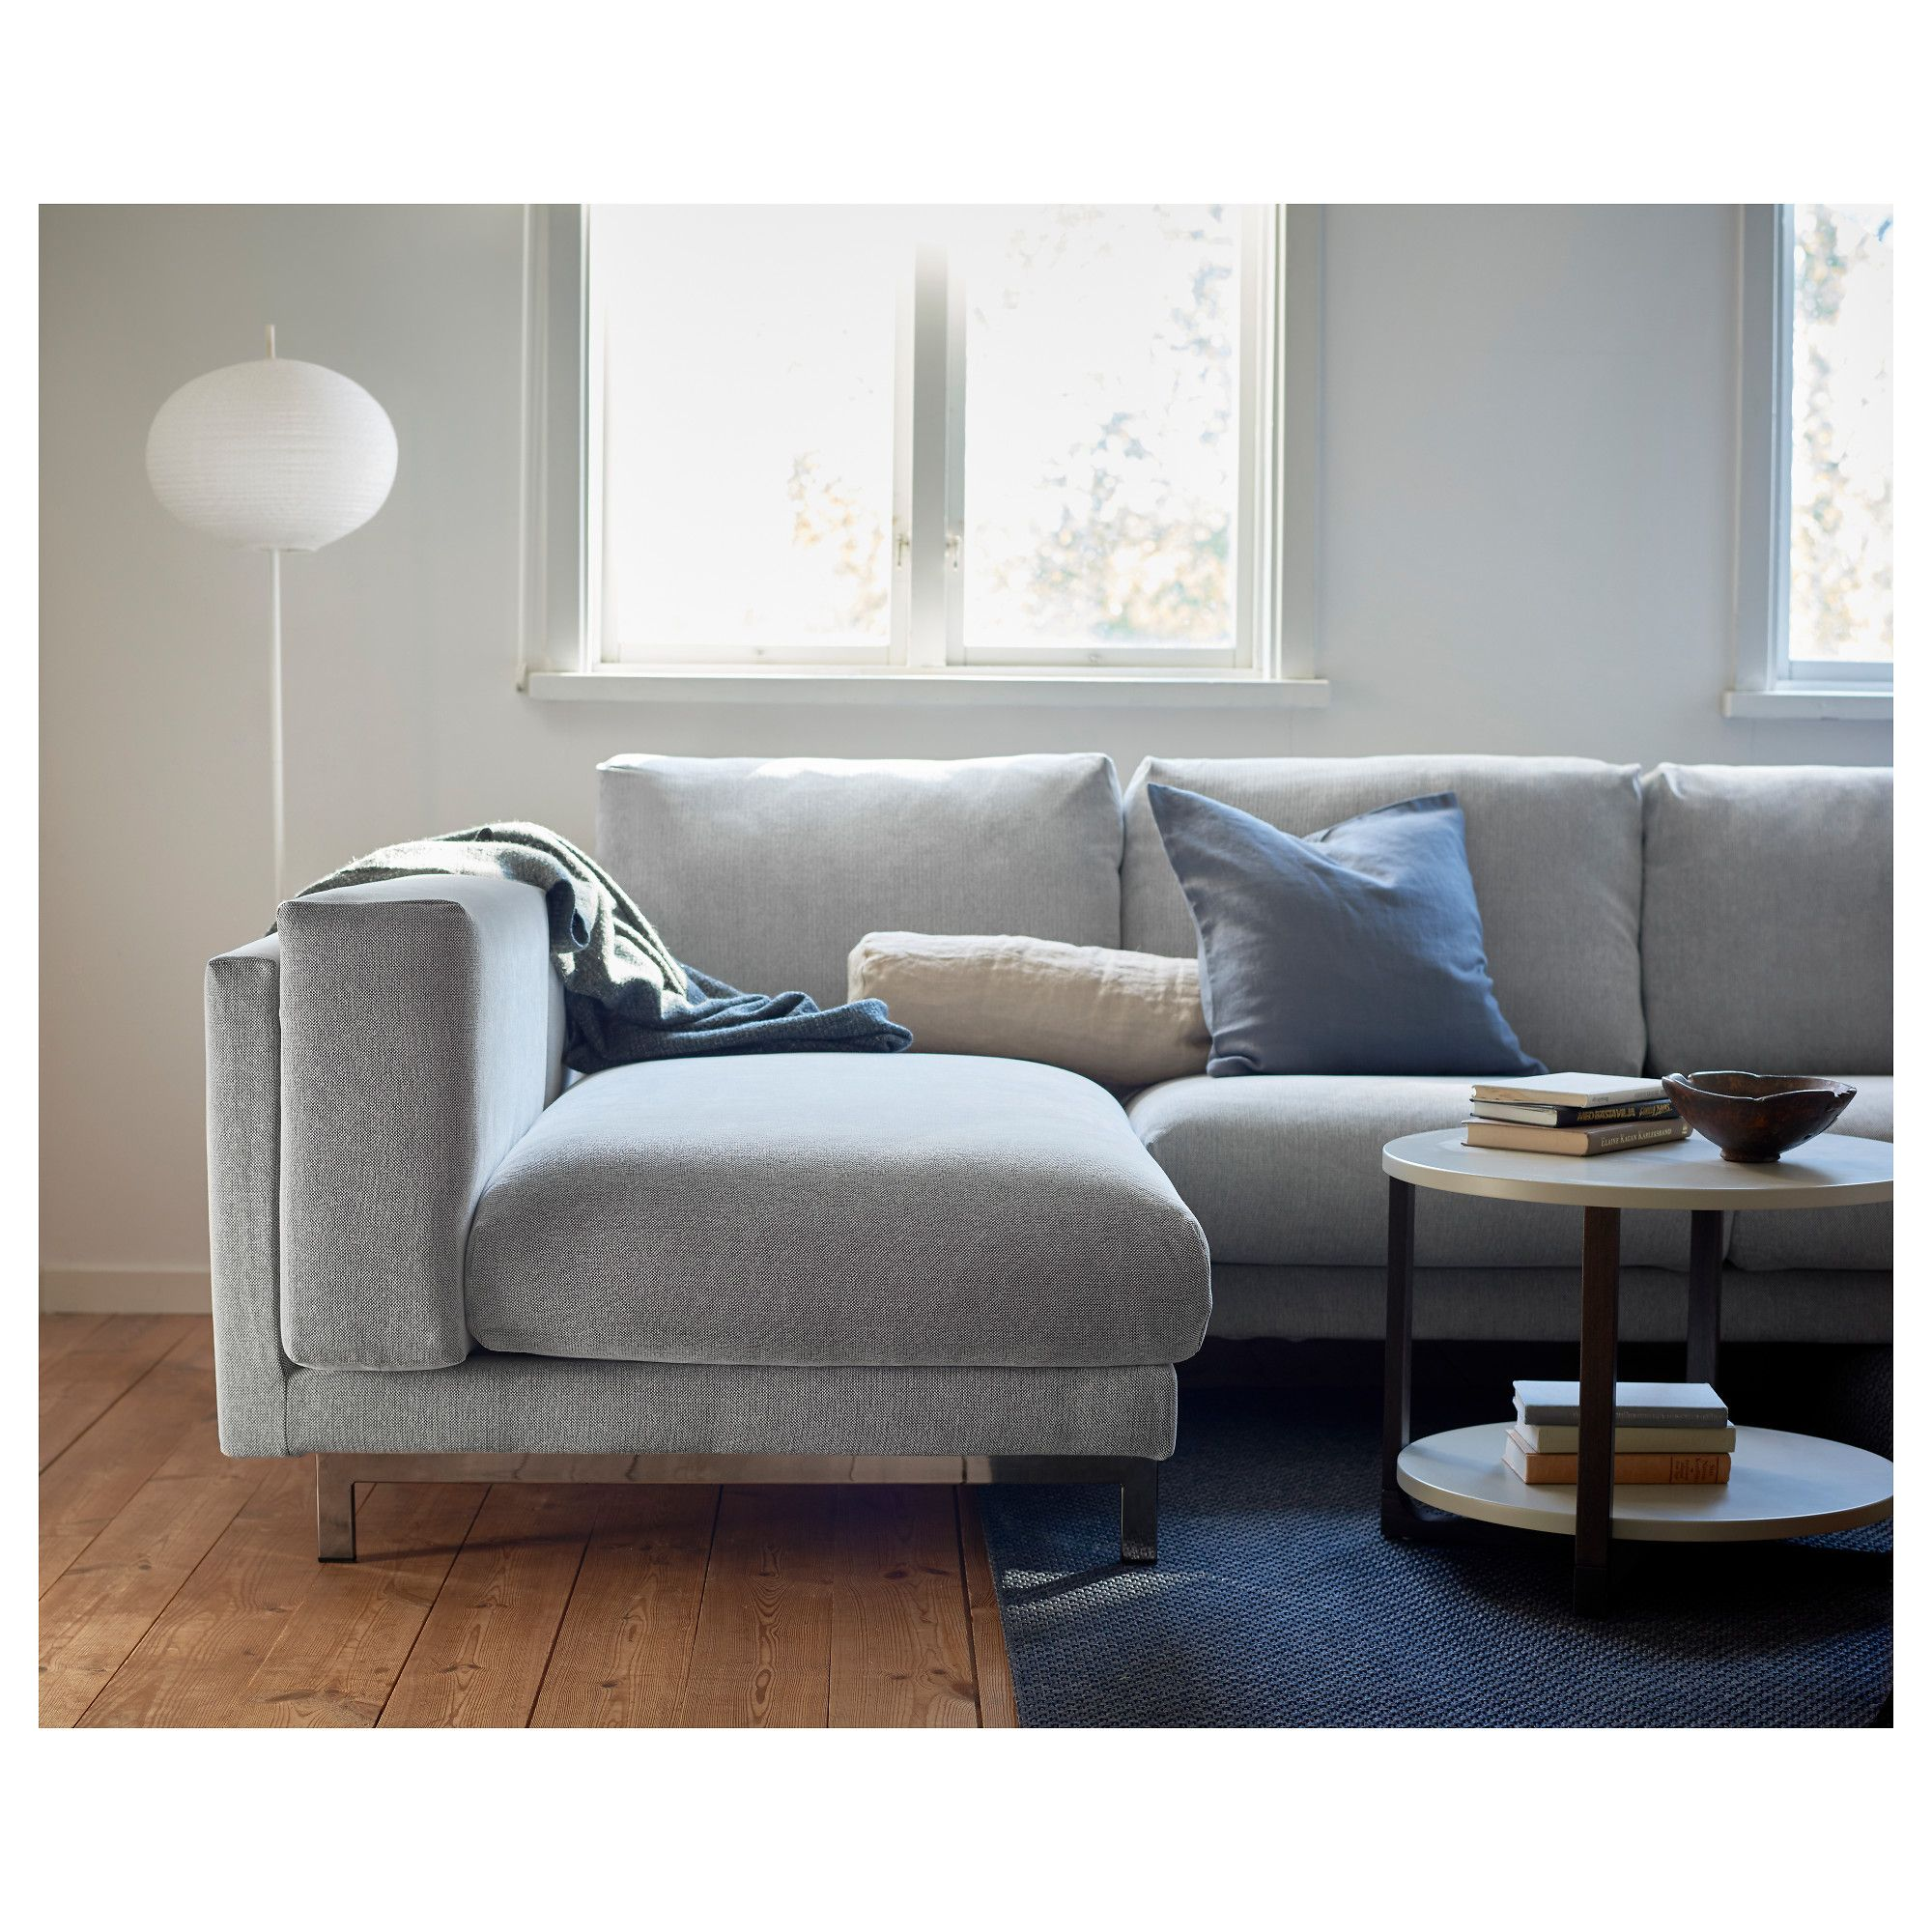 Nockeby 2019Ikea Home Furnishings Couches Furniture And In rxBedCo